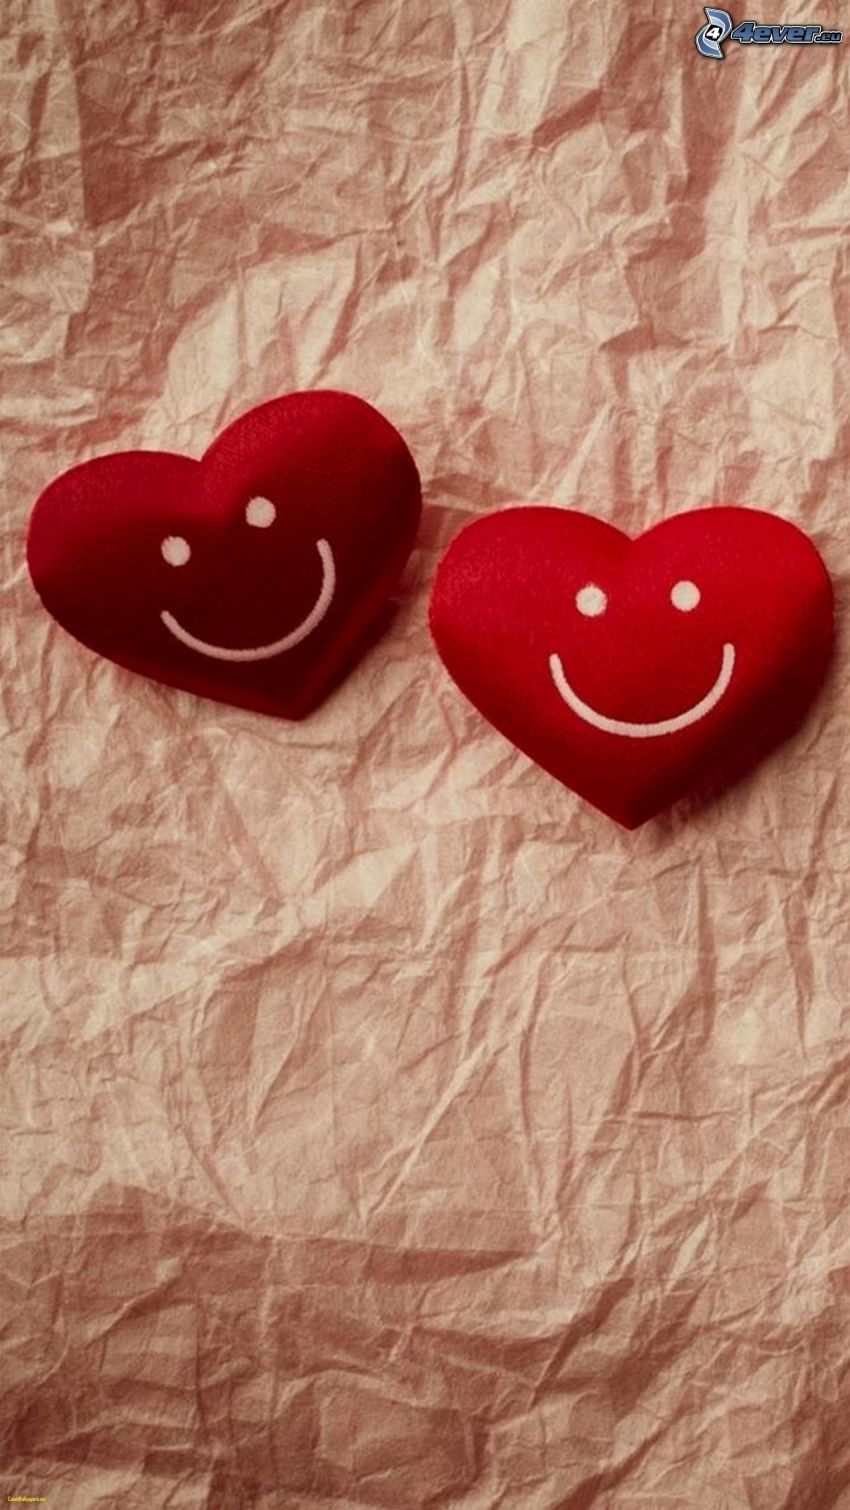 hearts, smiley